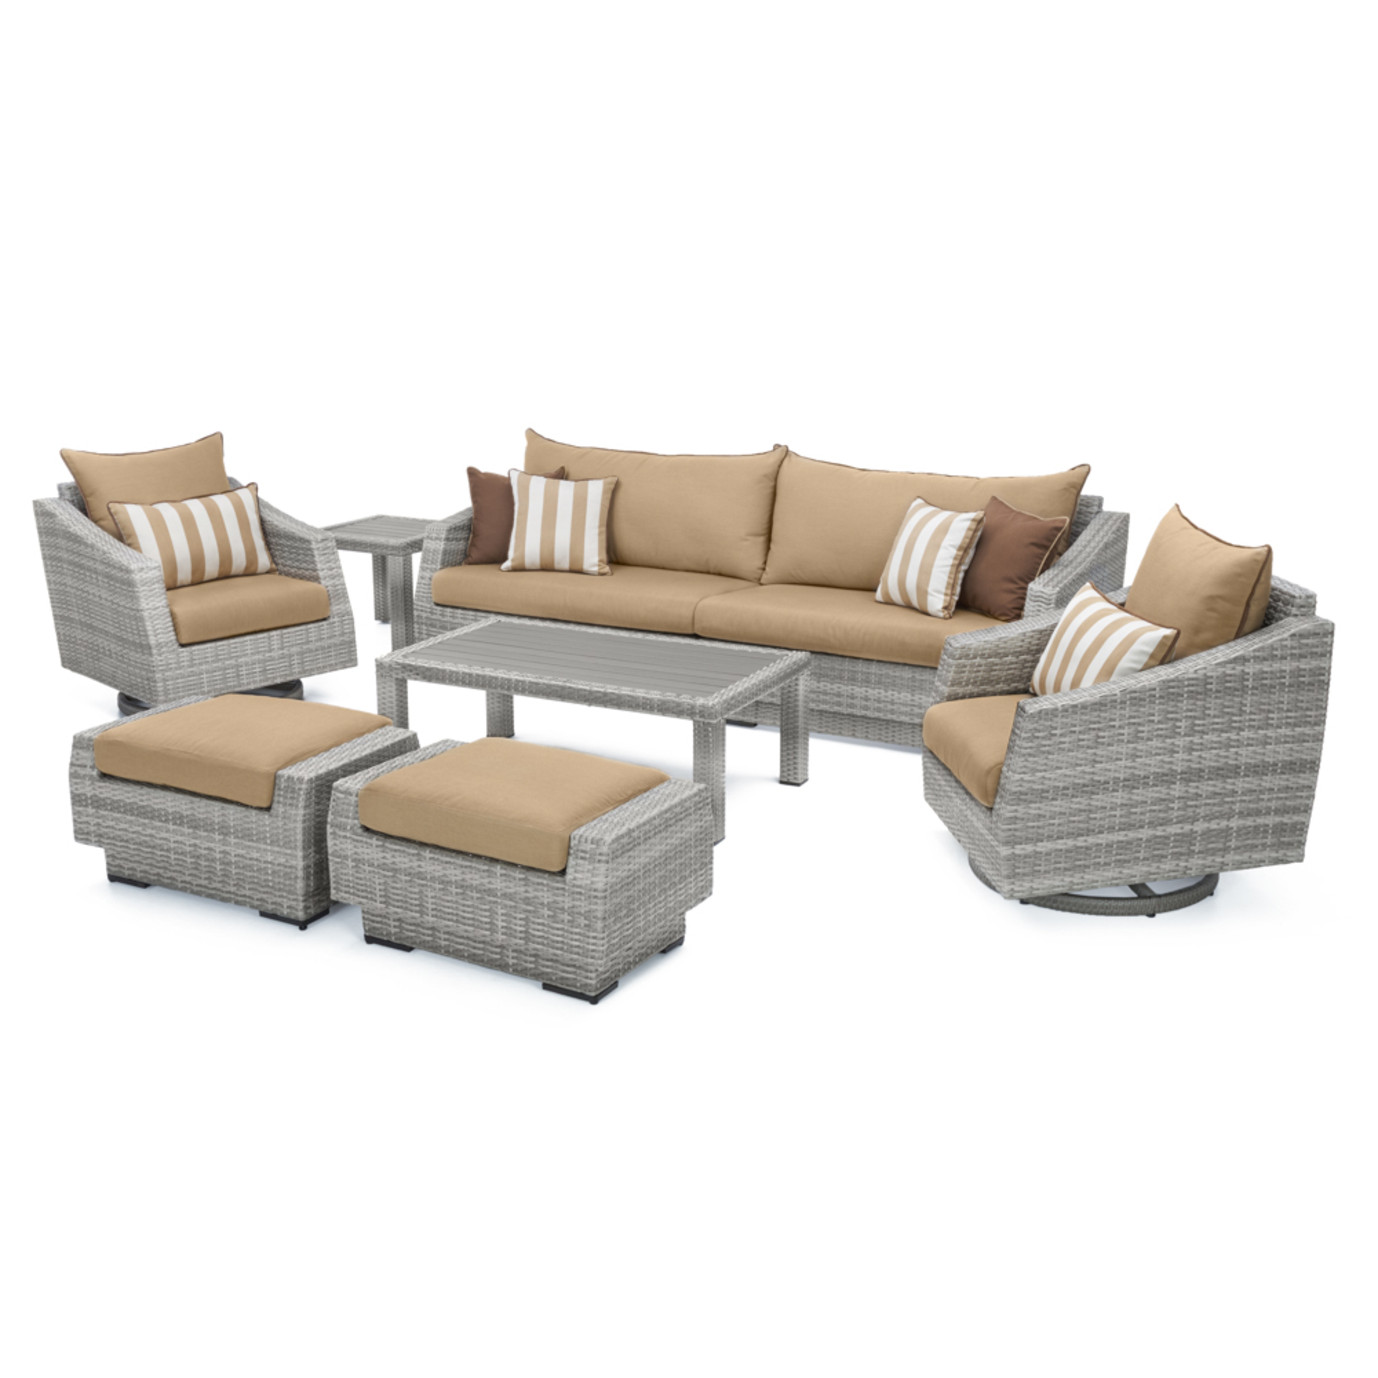 Cannes™ Deluxe 8pc Sofa & Club Chair Set - Maxim Beige